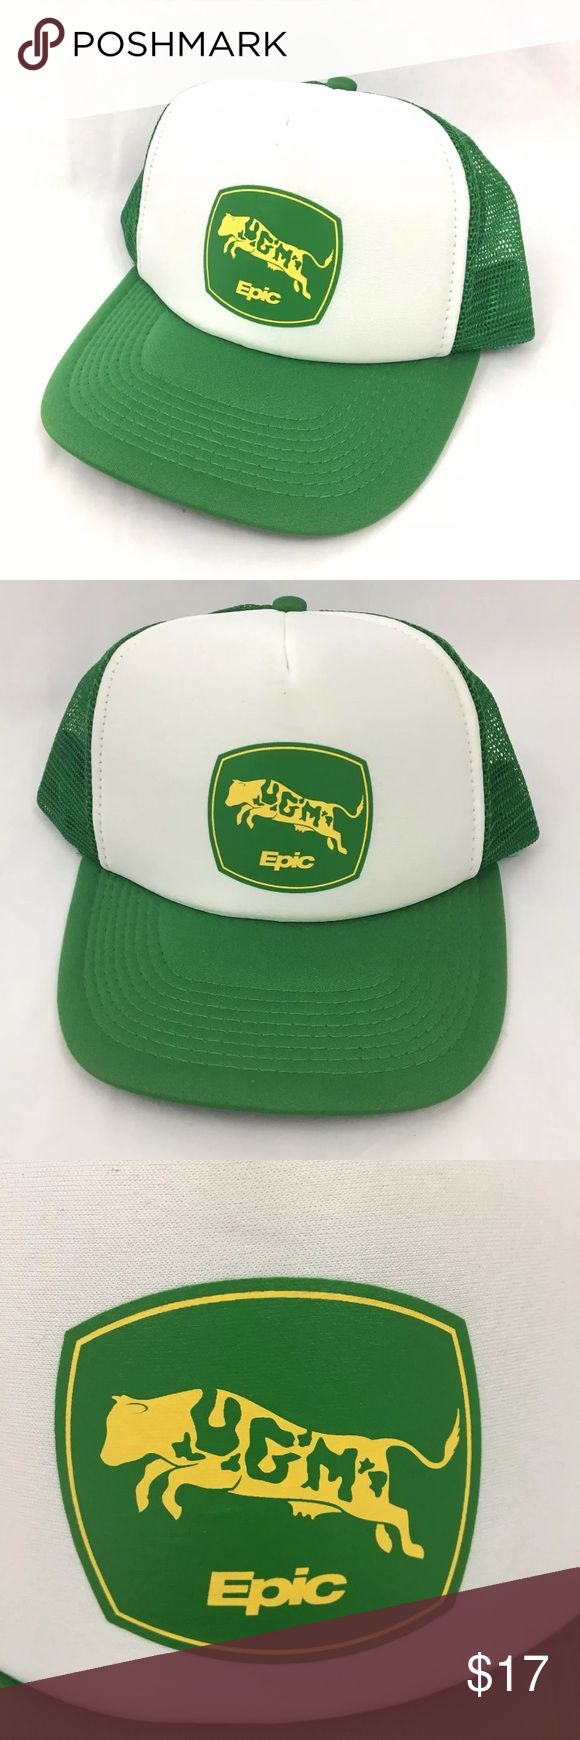 Retro Cow Logo Trucker Hat Epic Systems UGM Cow SnapBack Trucker Hat Cap Retro Farmer Farm Steer Cattle Green and white traditional mesh and foam trucker hat  Unique cow logo on front! Great condition, looks unworn epic Accessories Hats